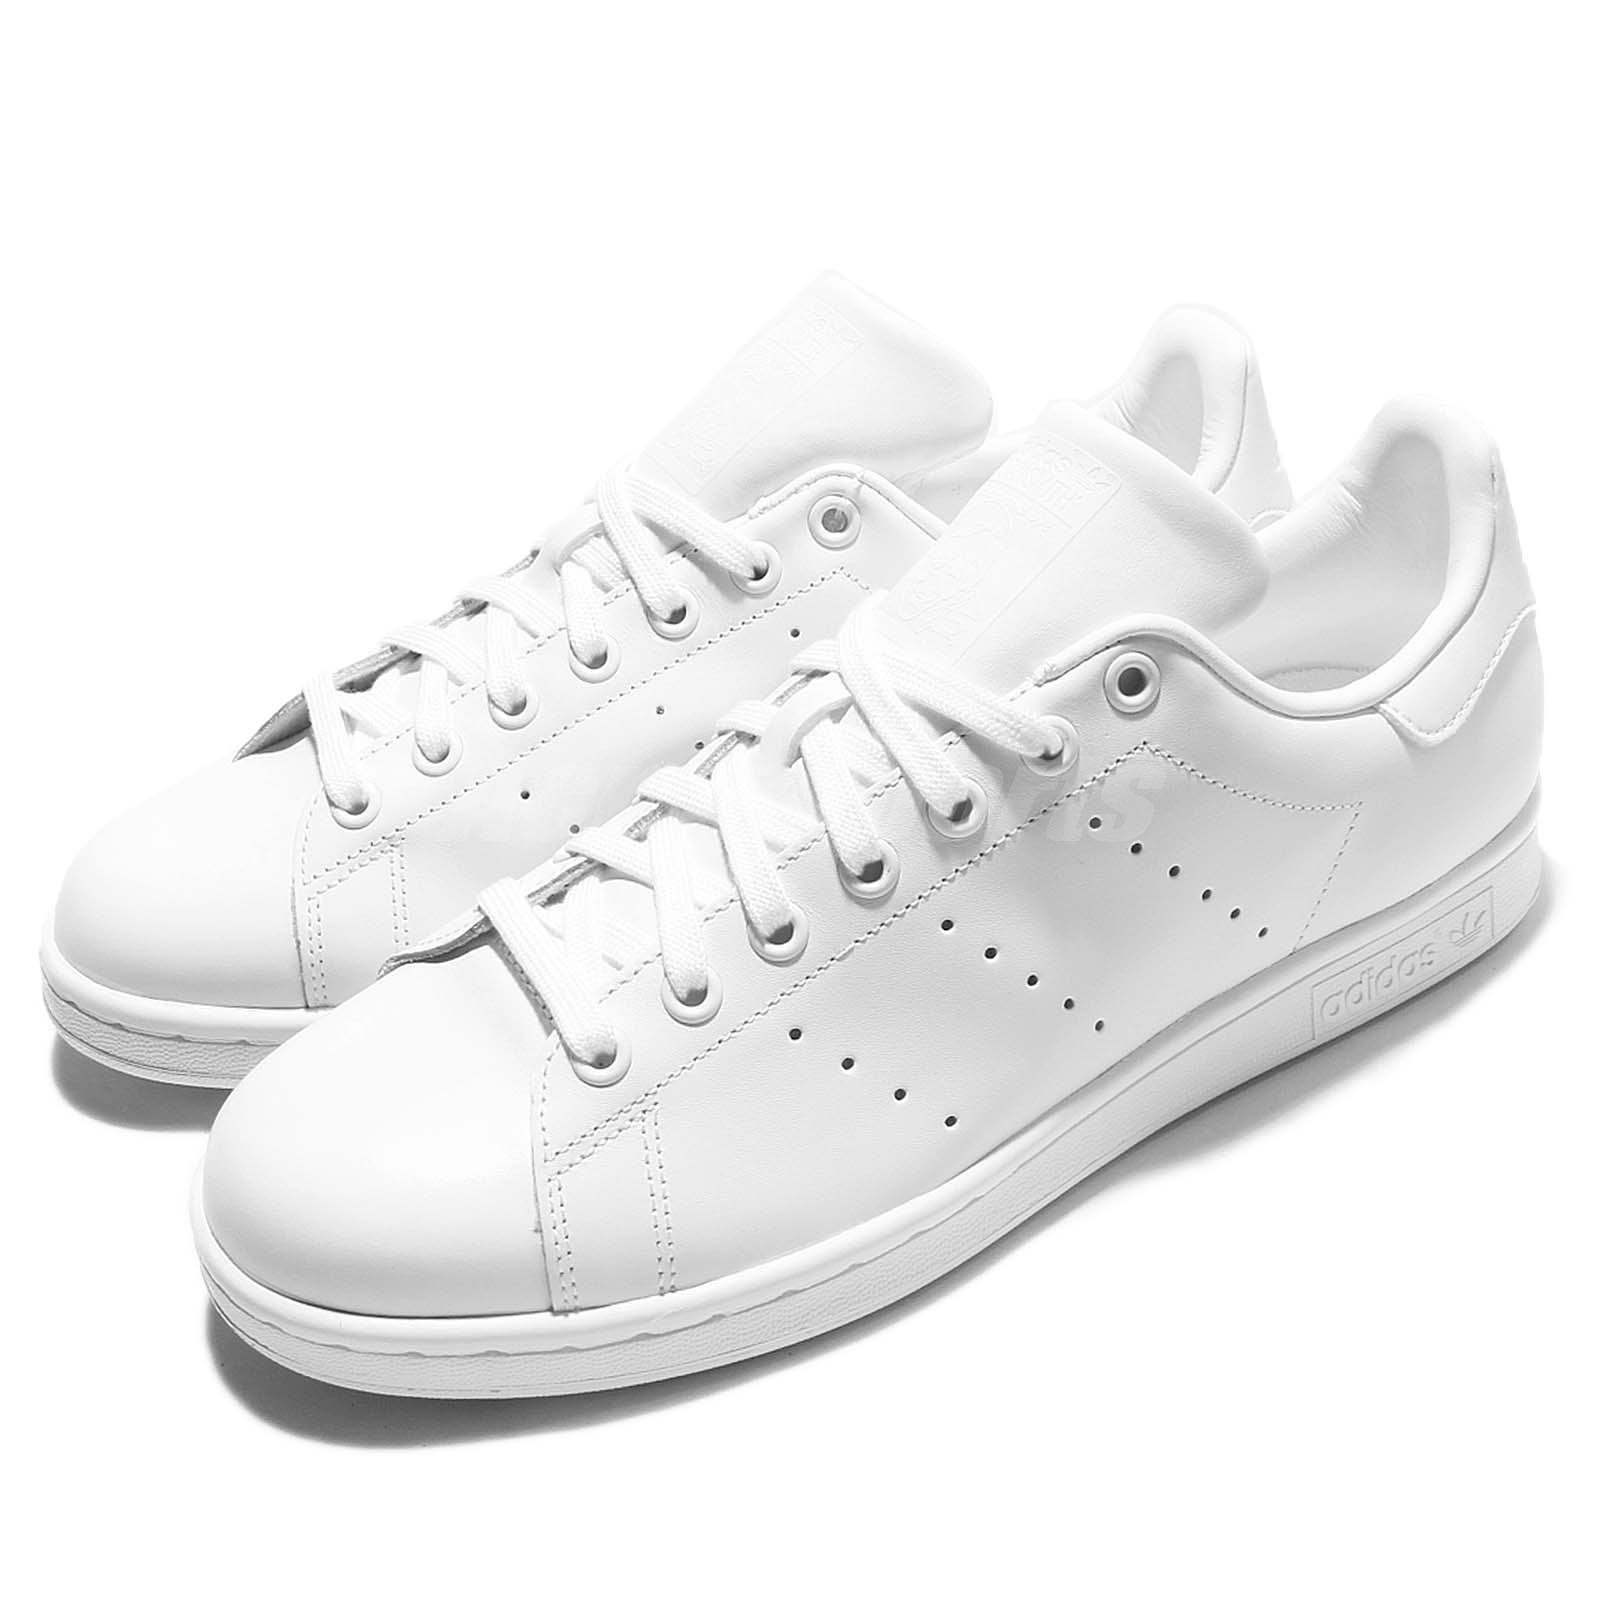 Details about adidas Originals Stan Smith Triple White Monochrome Men Shoes Sneakers S75104